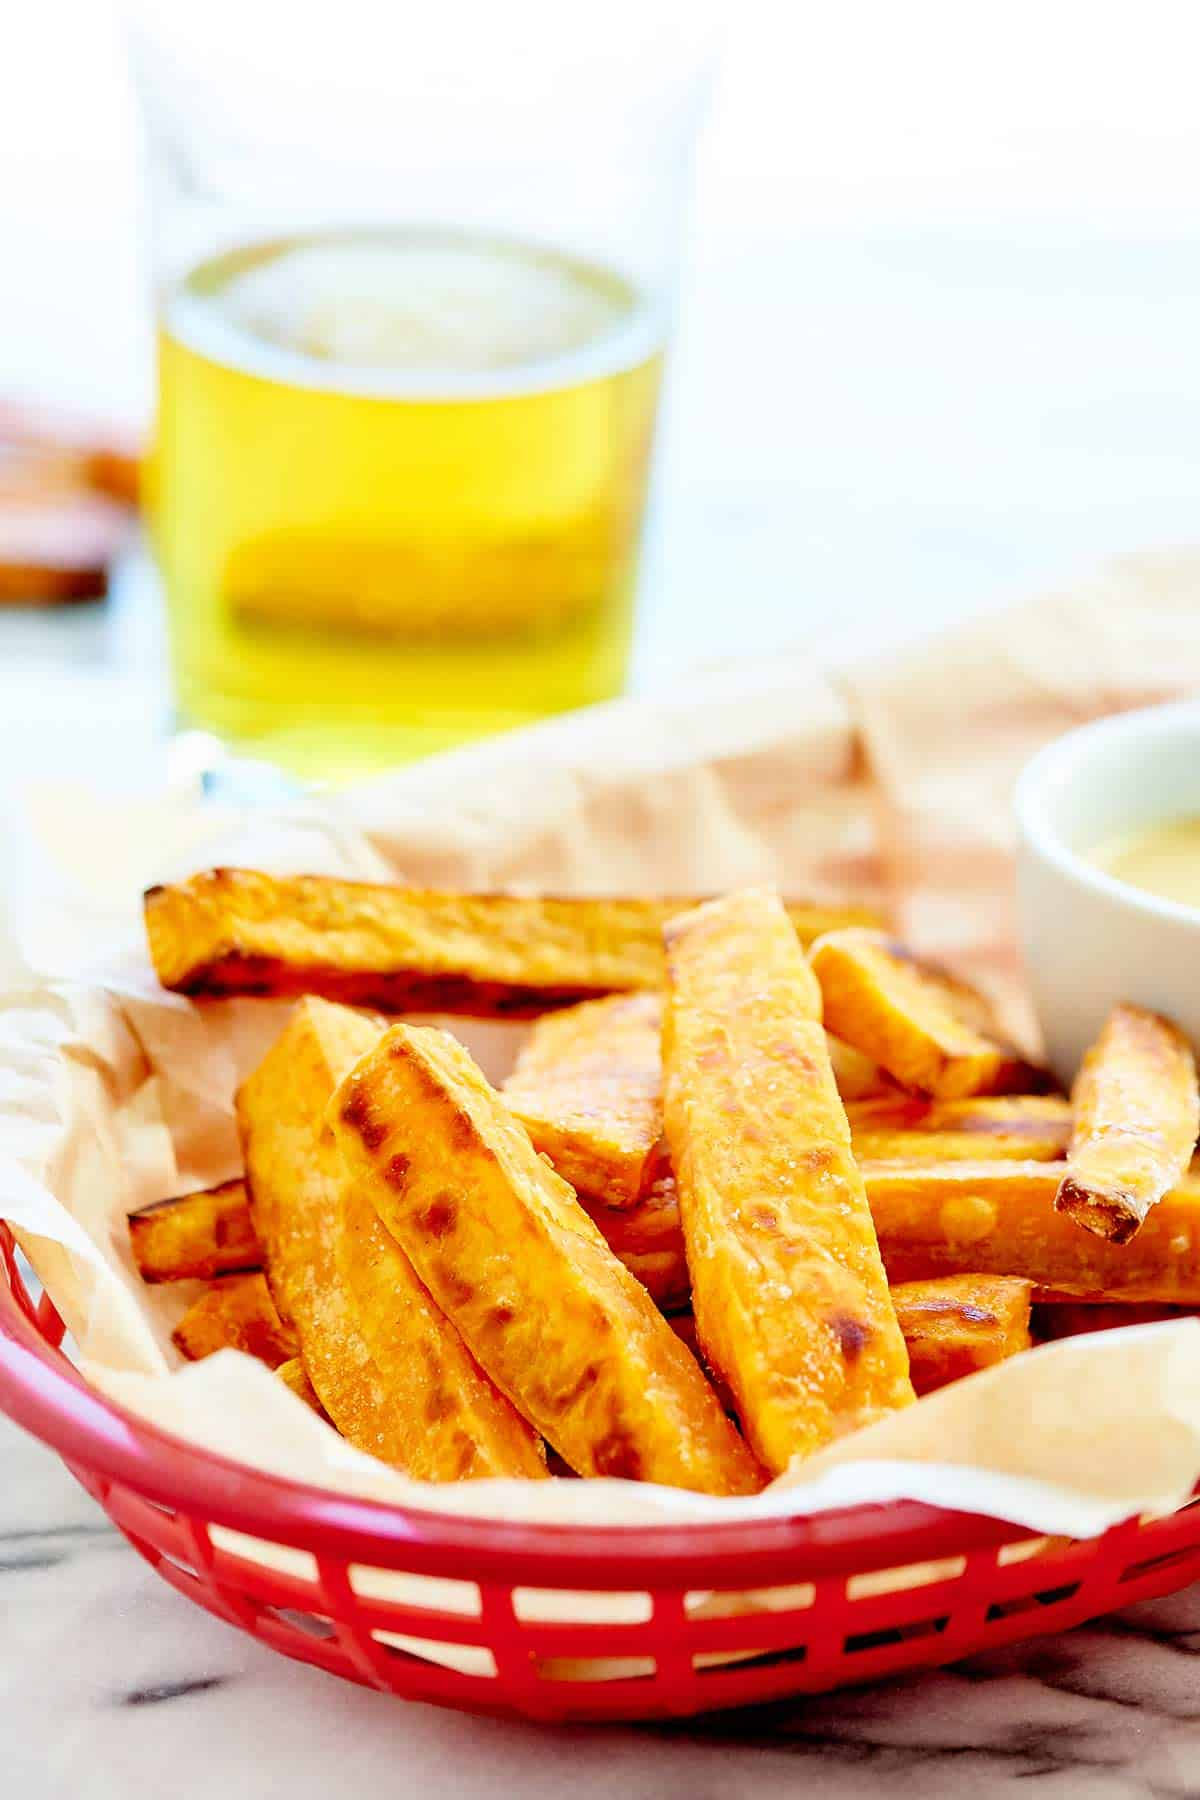 Baked sweet potato fries in basket